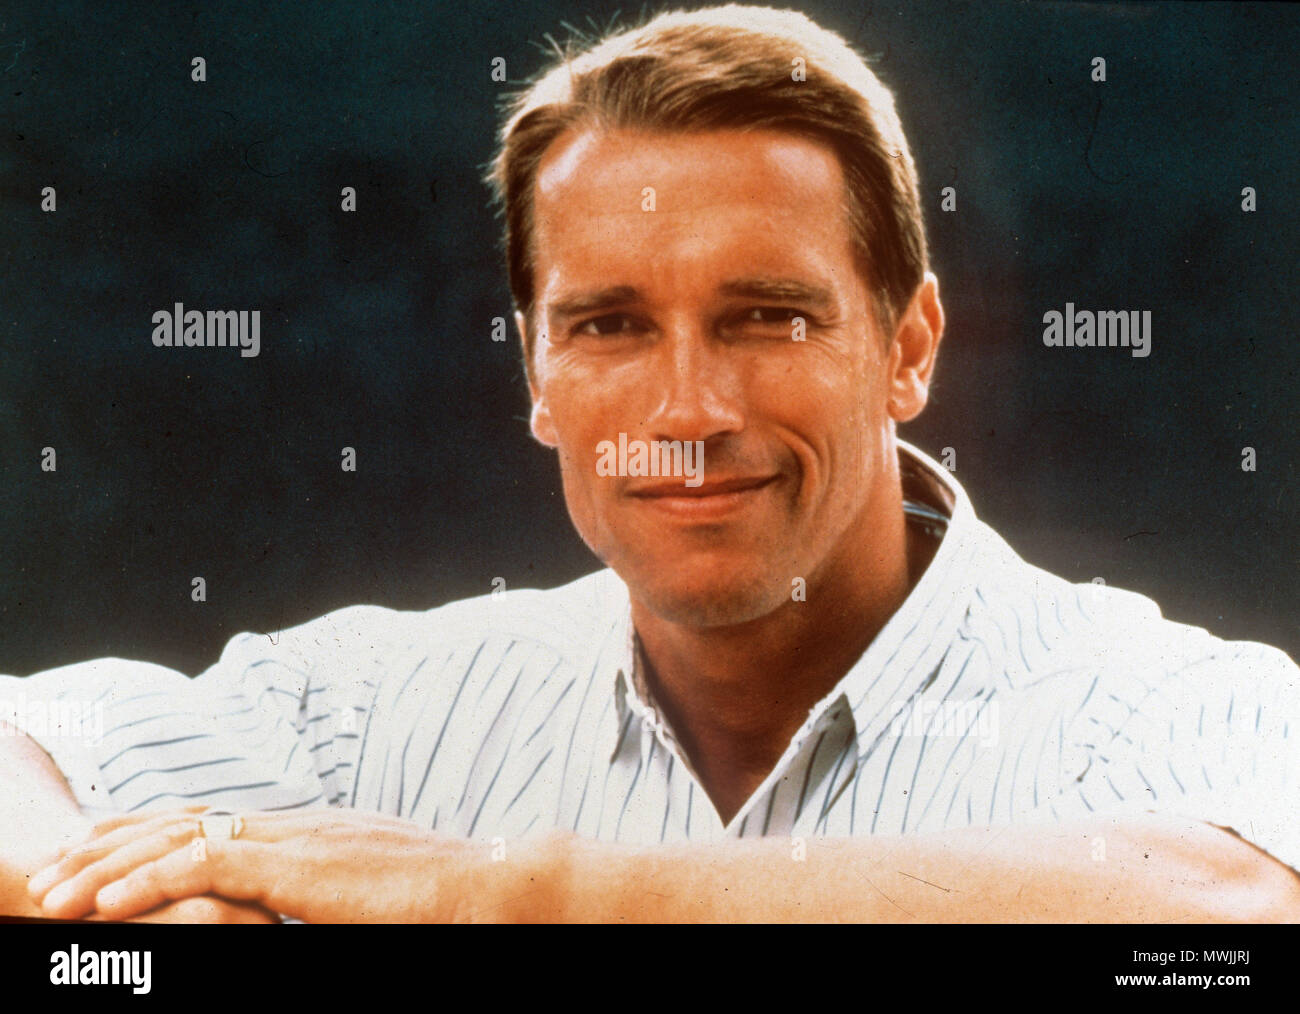 Schwarzenegger Said Stock Photos & Schwarzenegger Said Stock